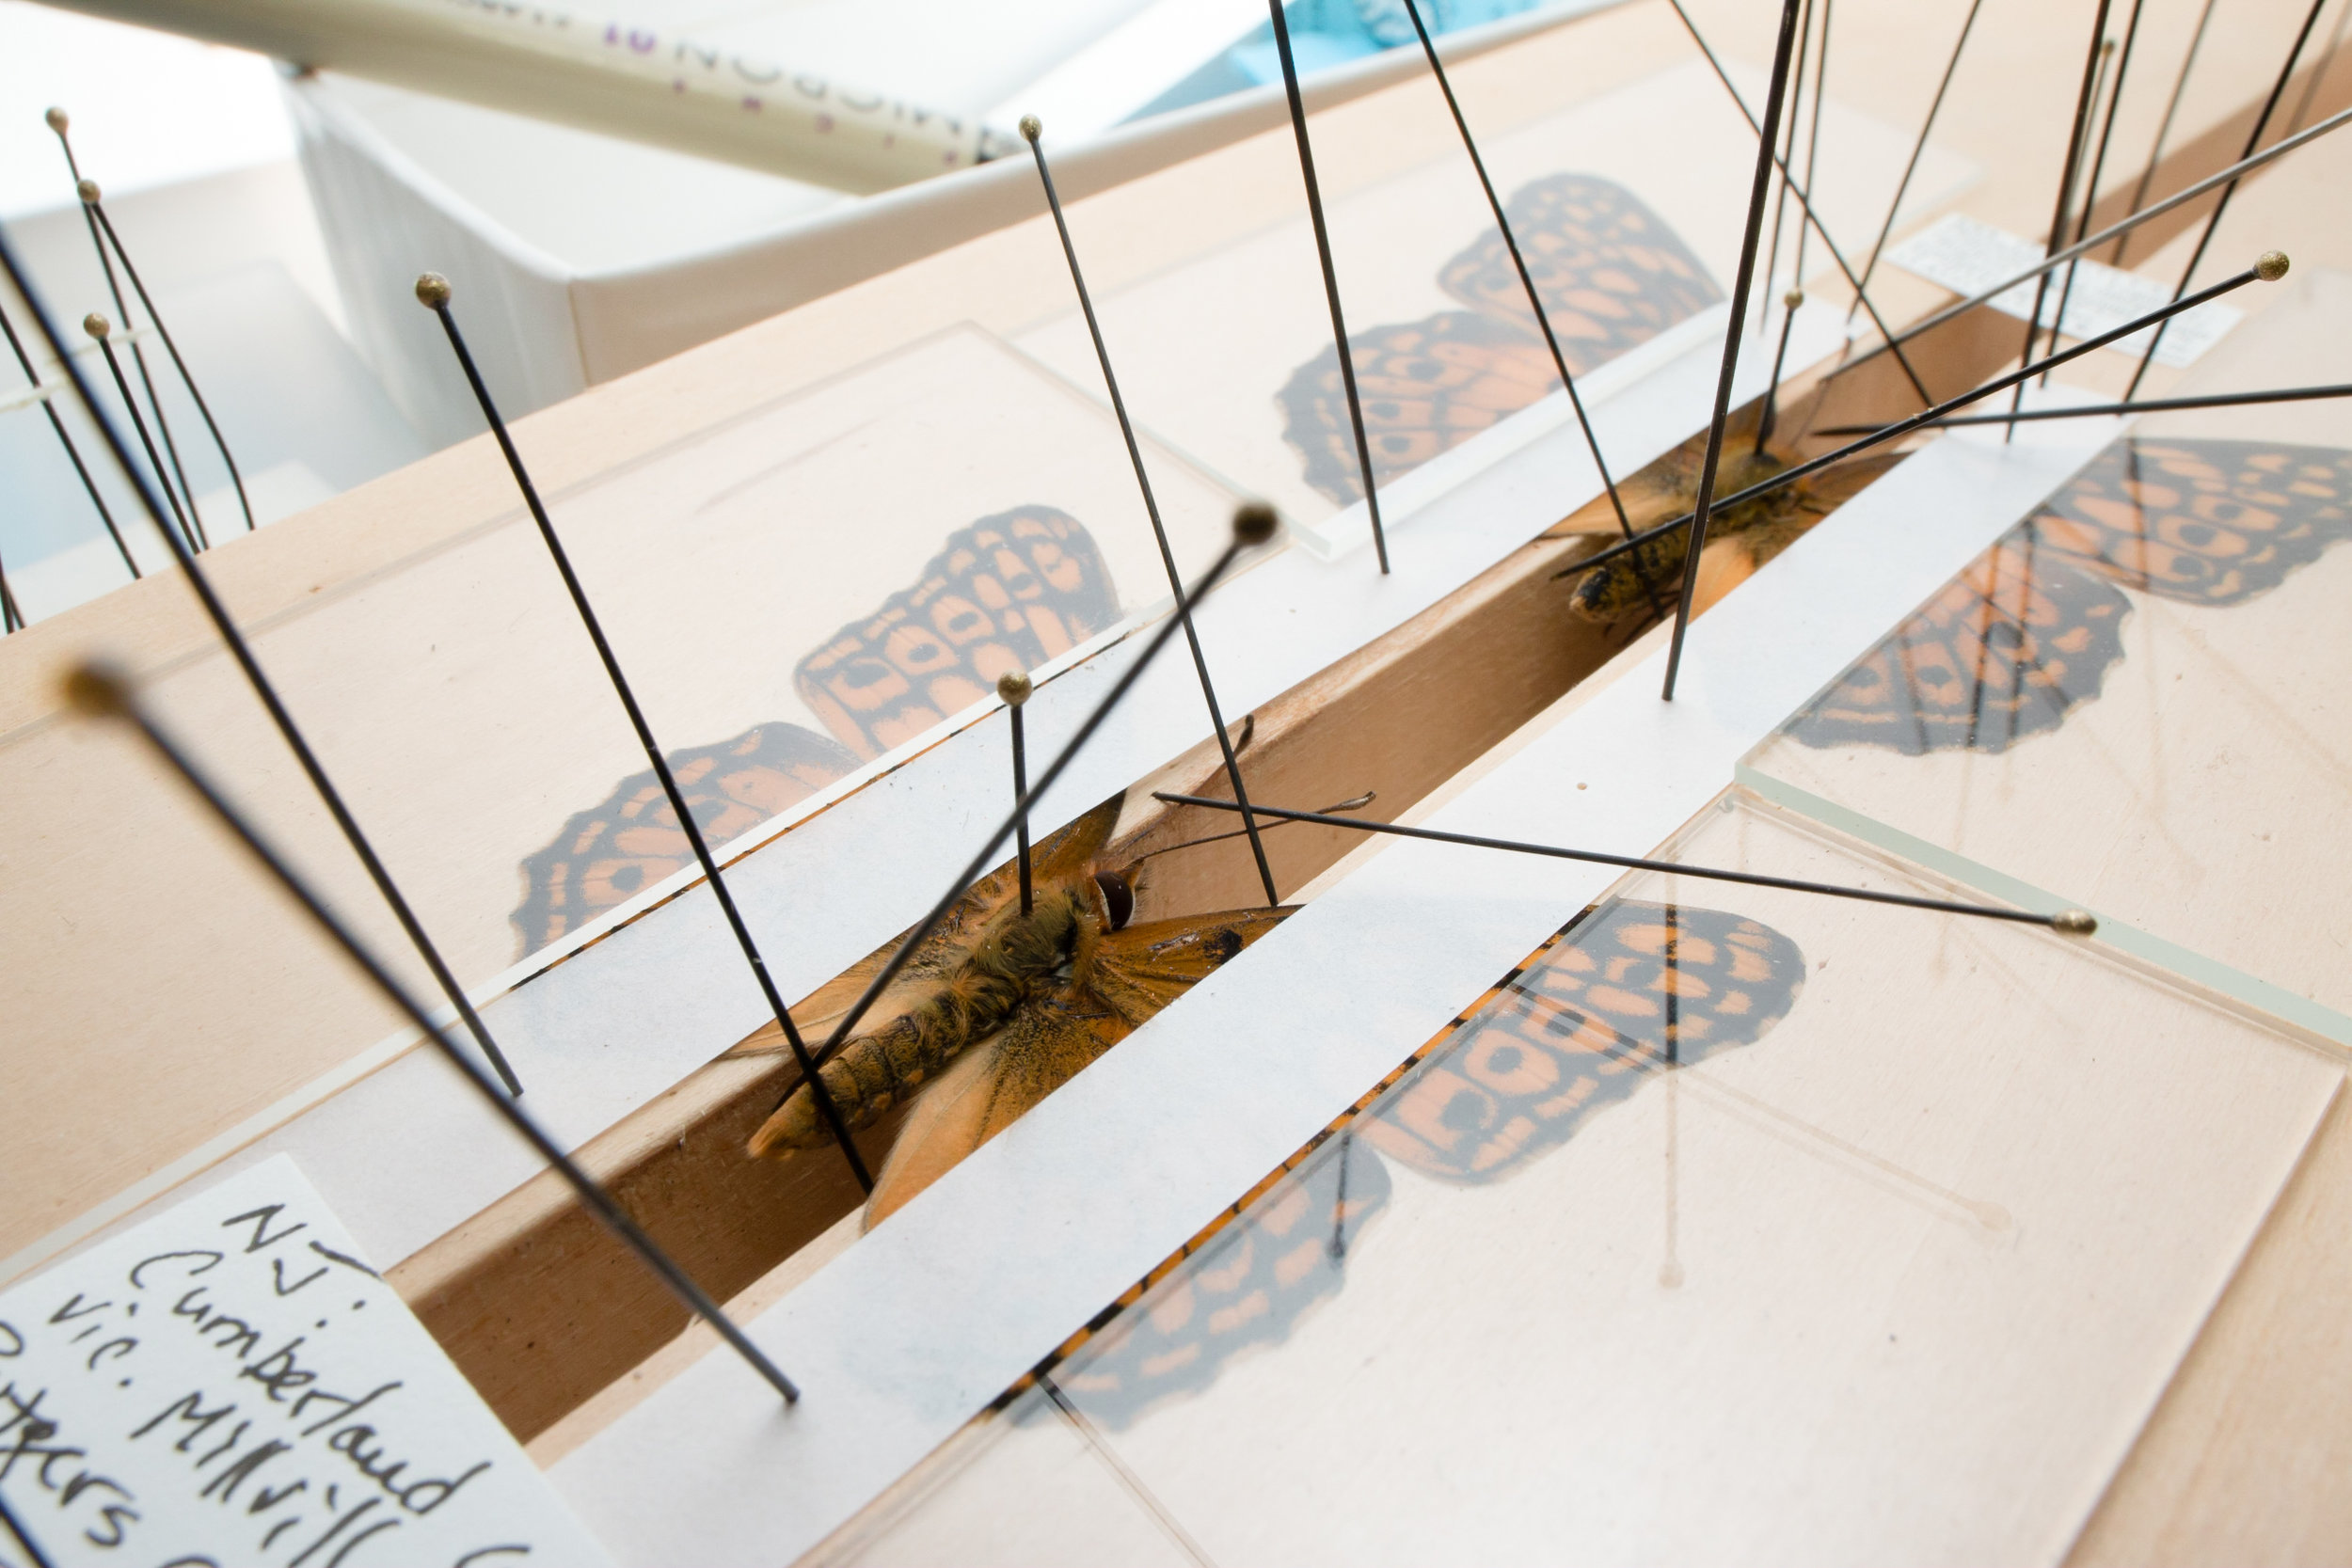 Spreading boards, such as the one here, are used to prepare butterflies and moth specimens for the collection. The wings are spread and left for a few weeks to dry before being taken off the board and put into an insect drawer.